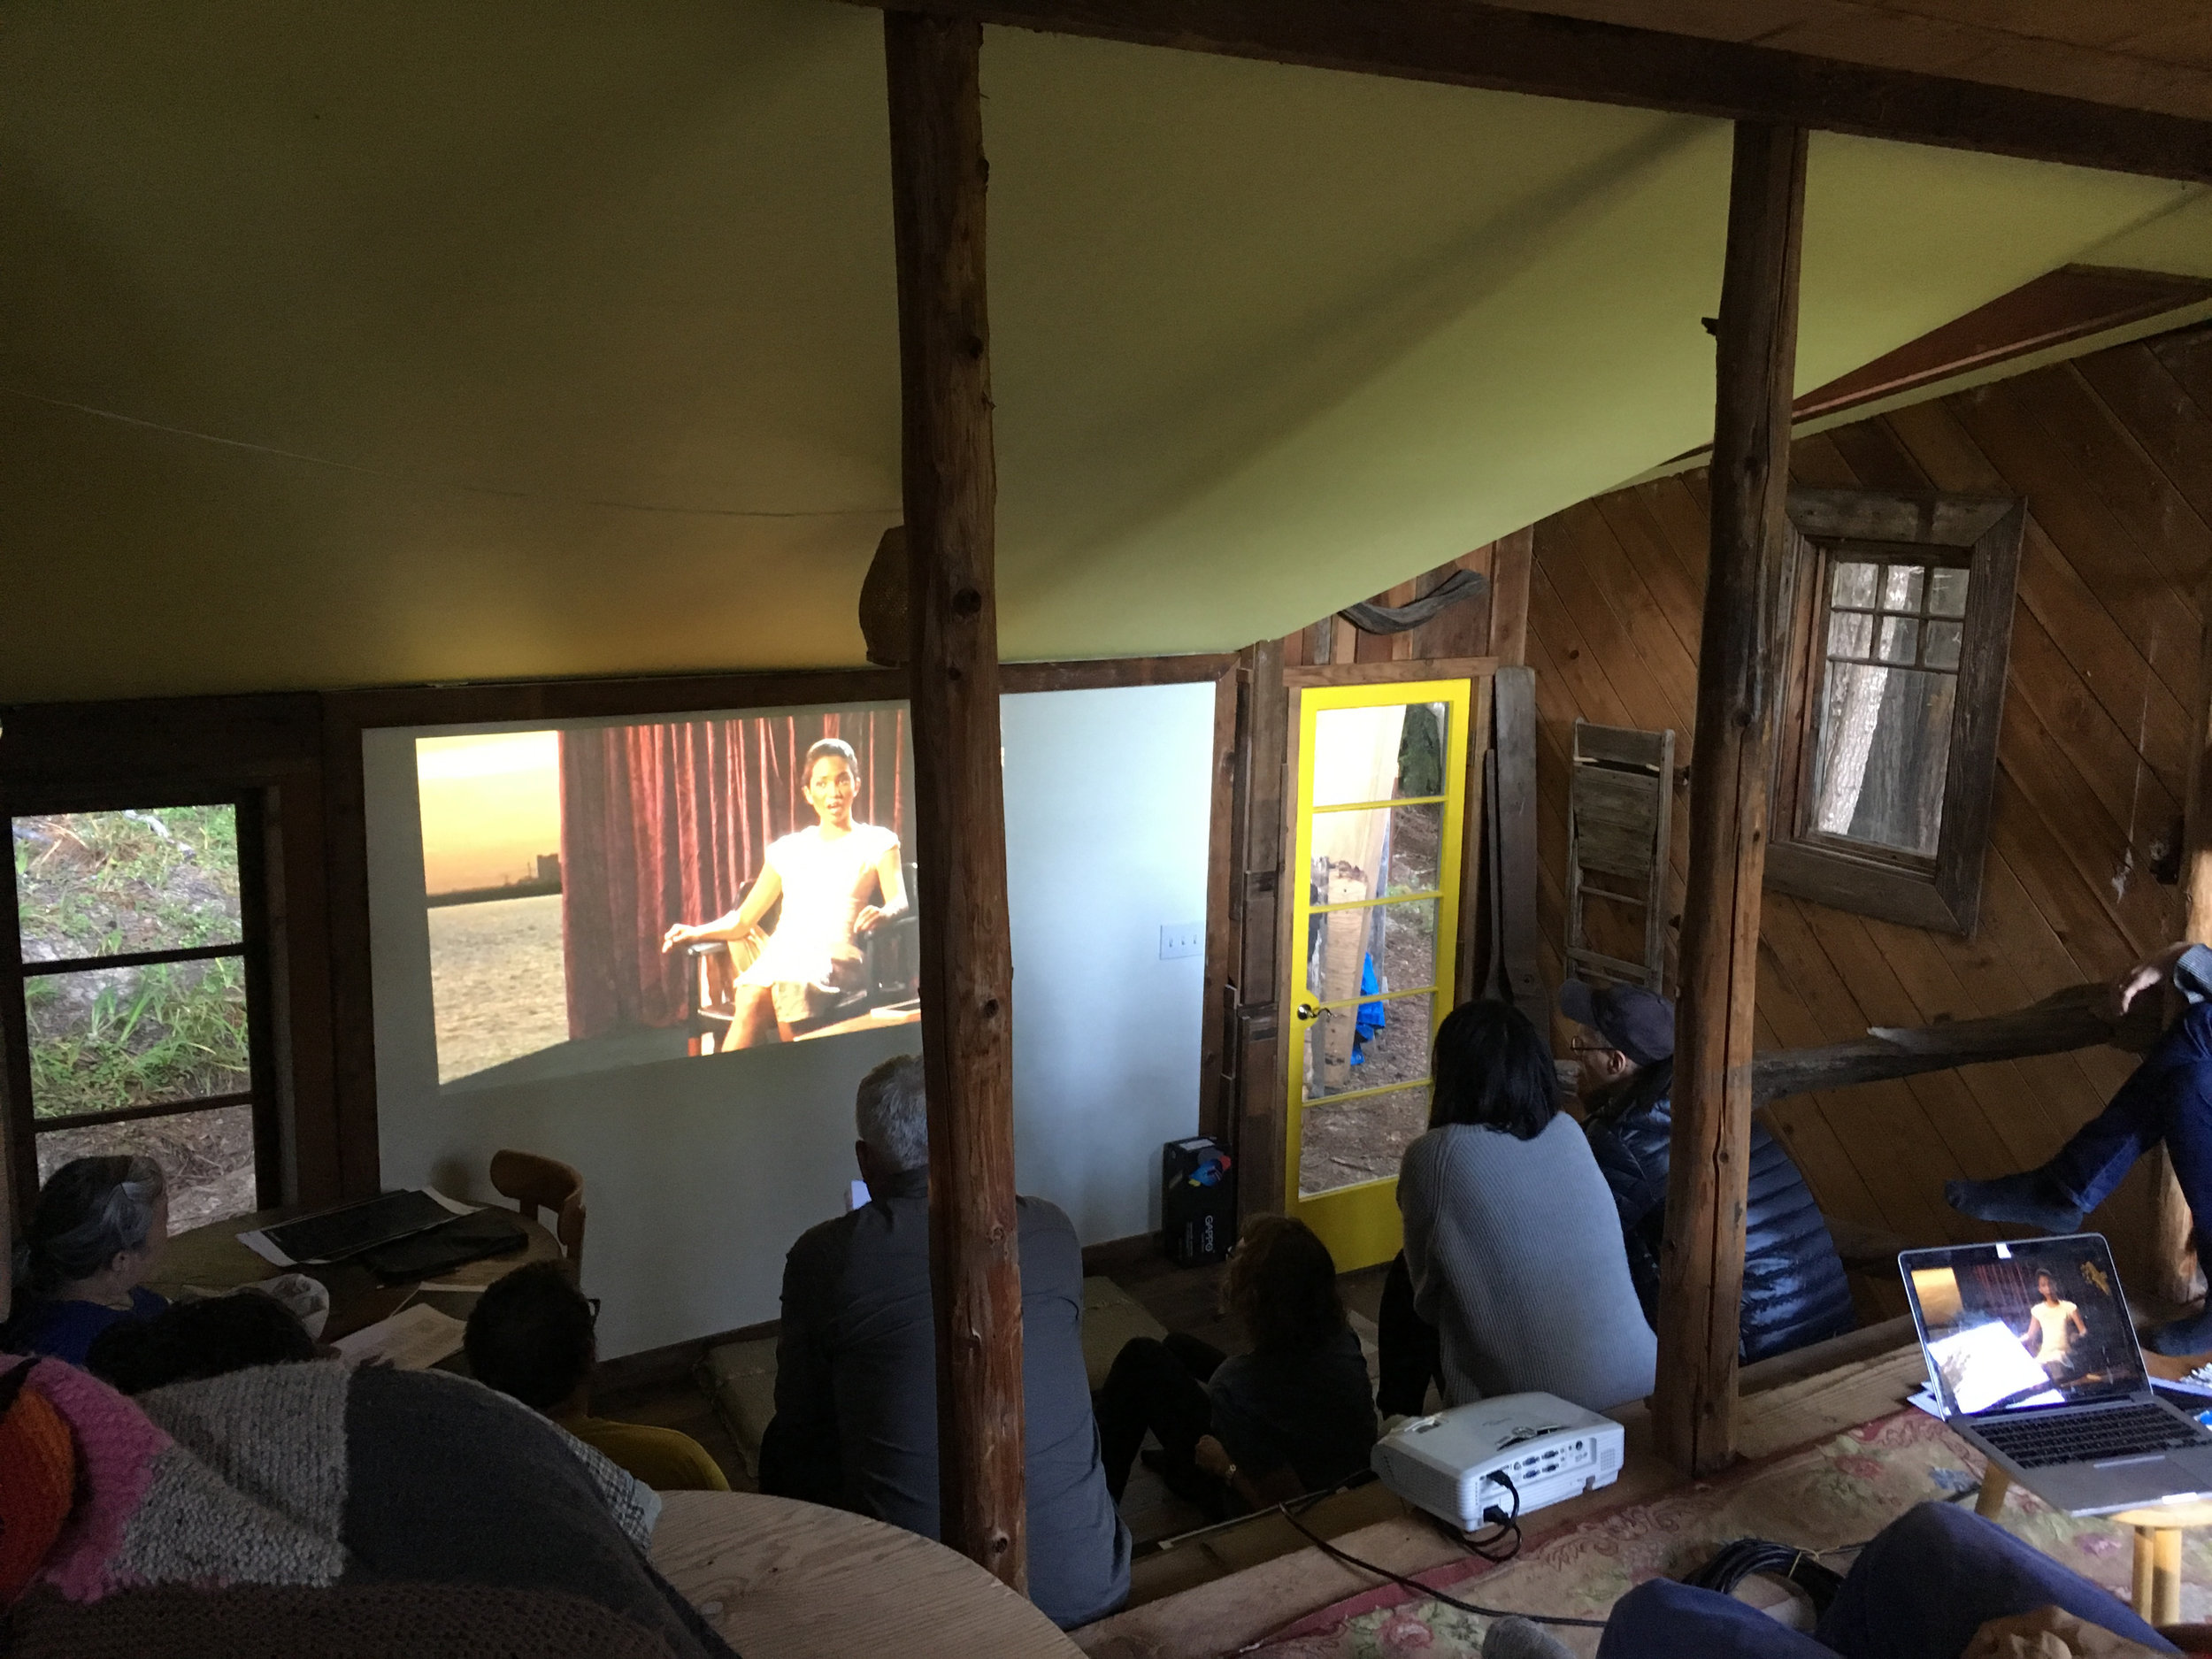 Companion Planting . Module: Economics, led by Agnieszka Gratza, screening of  Museum Futures: Distributed , a film by Marysia Lewandowska commissioned by Moderna Museet Stockholm, Sweden, on the occasion of the museum's 50th anniversary in 2008.Dawn Cabin, June 8, 2018.